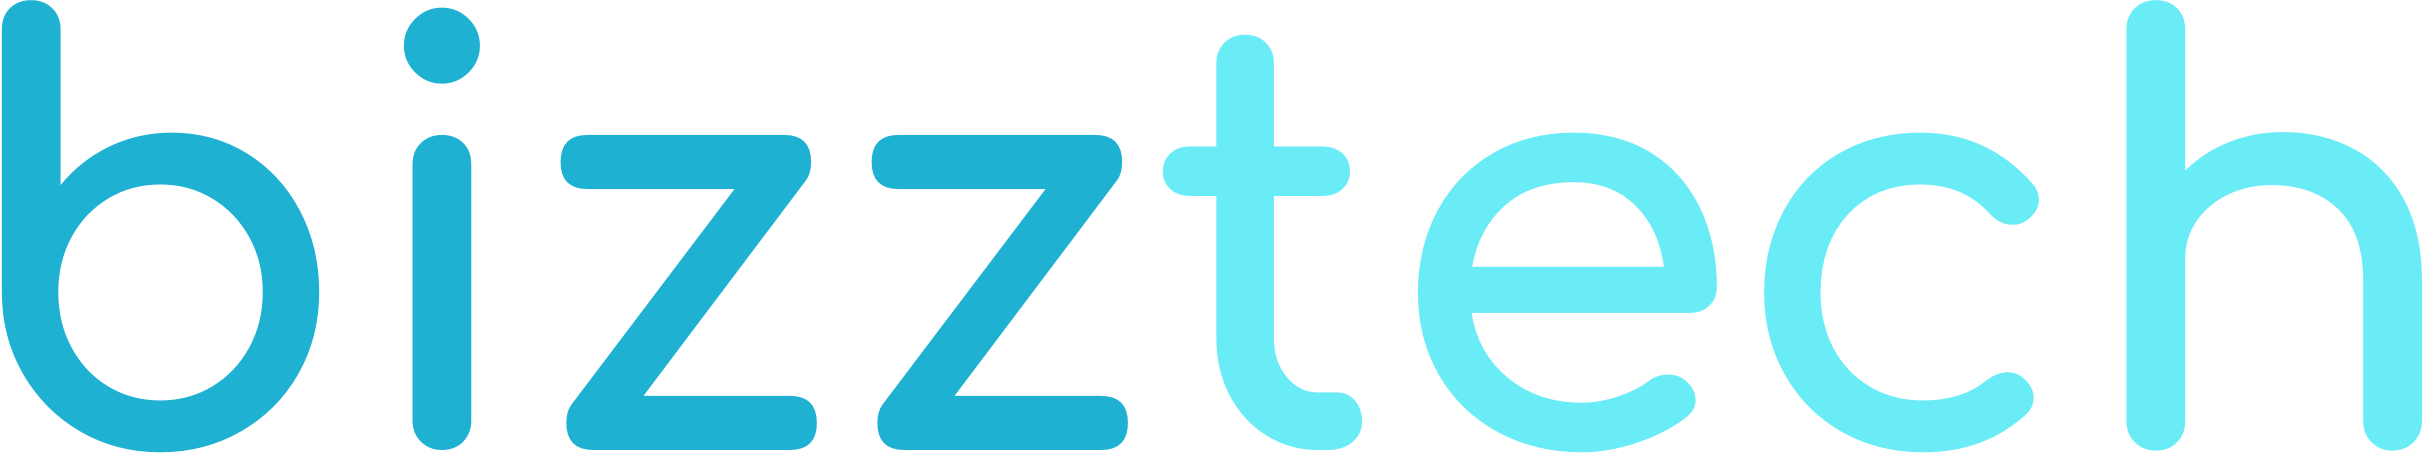 BizzTech – Virtual Business Events & Business Communities